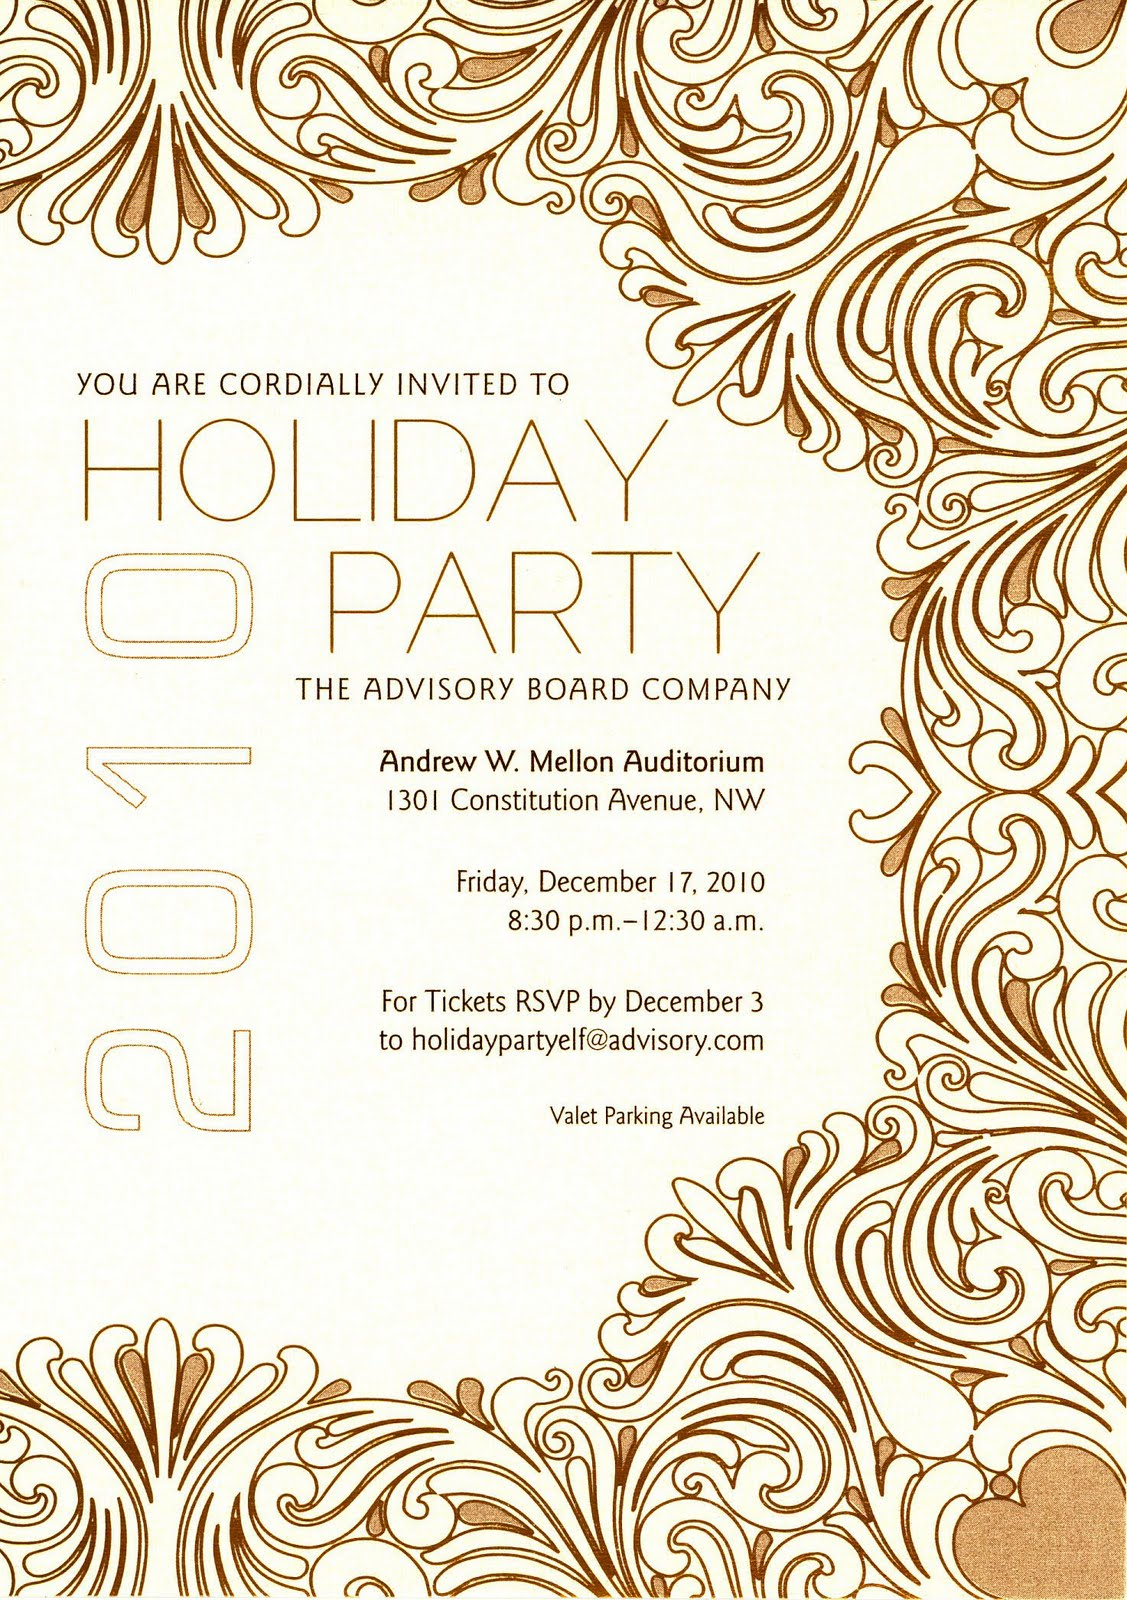 Office Party Invitation Templates. Top Office Party Invitation ...